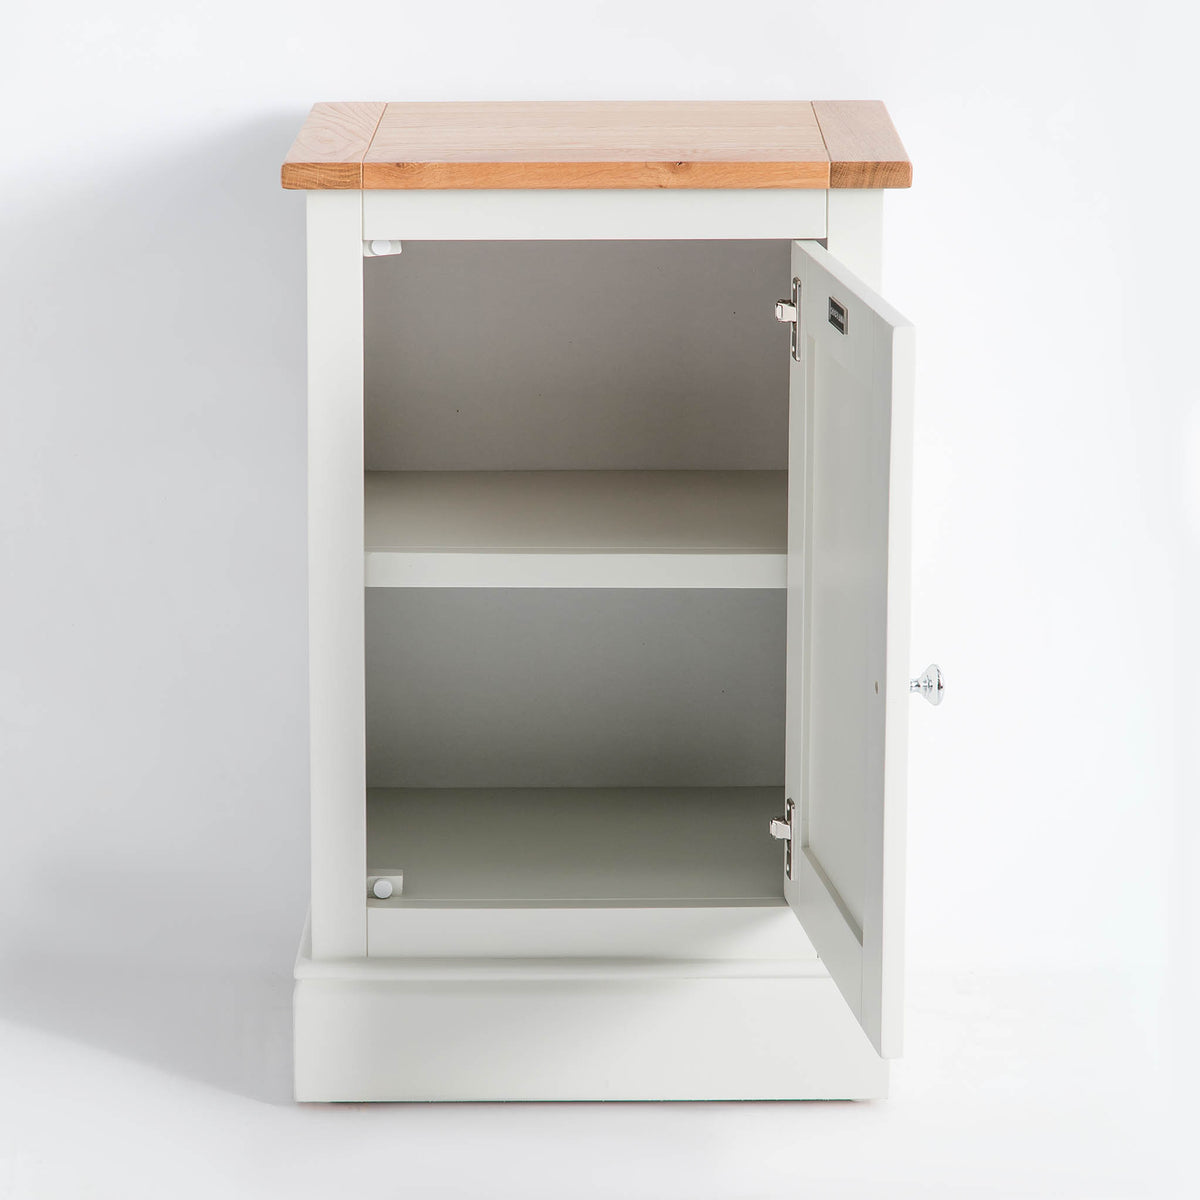 Internal view of the Chichester Ivory Cream Mini Cupboard